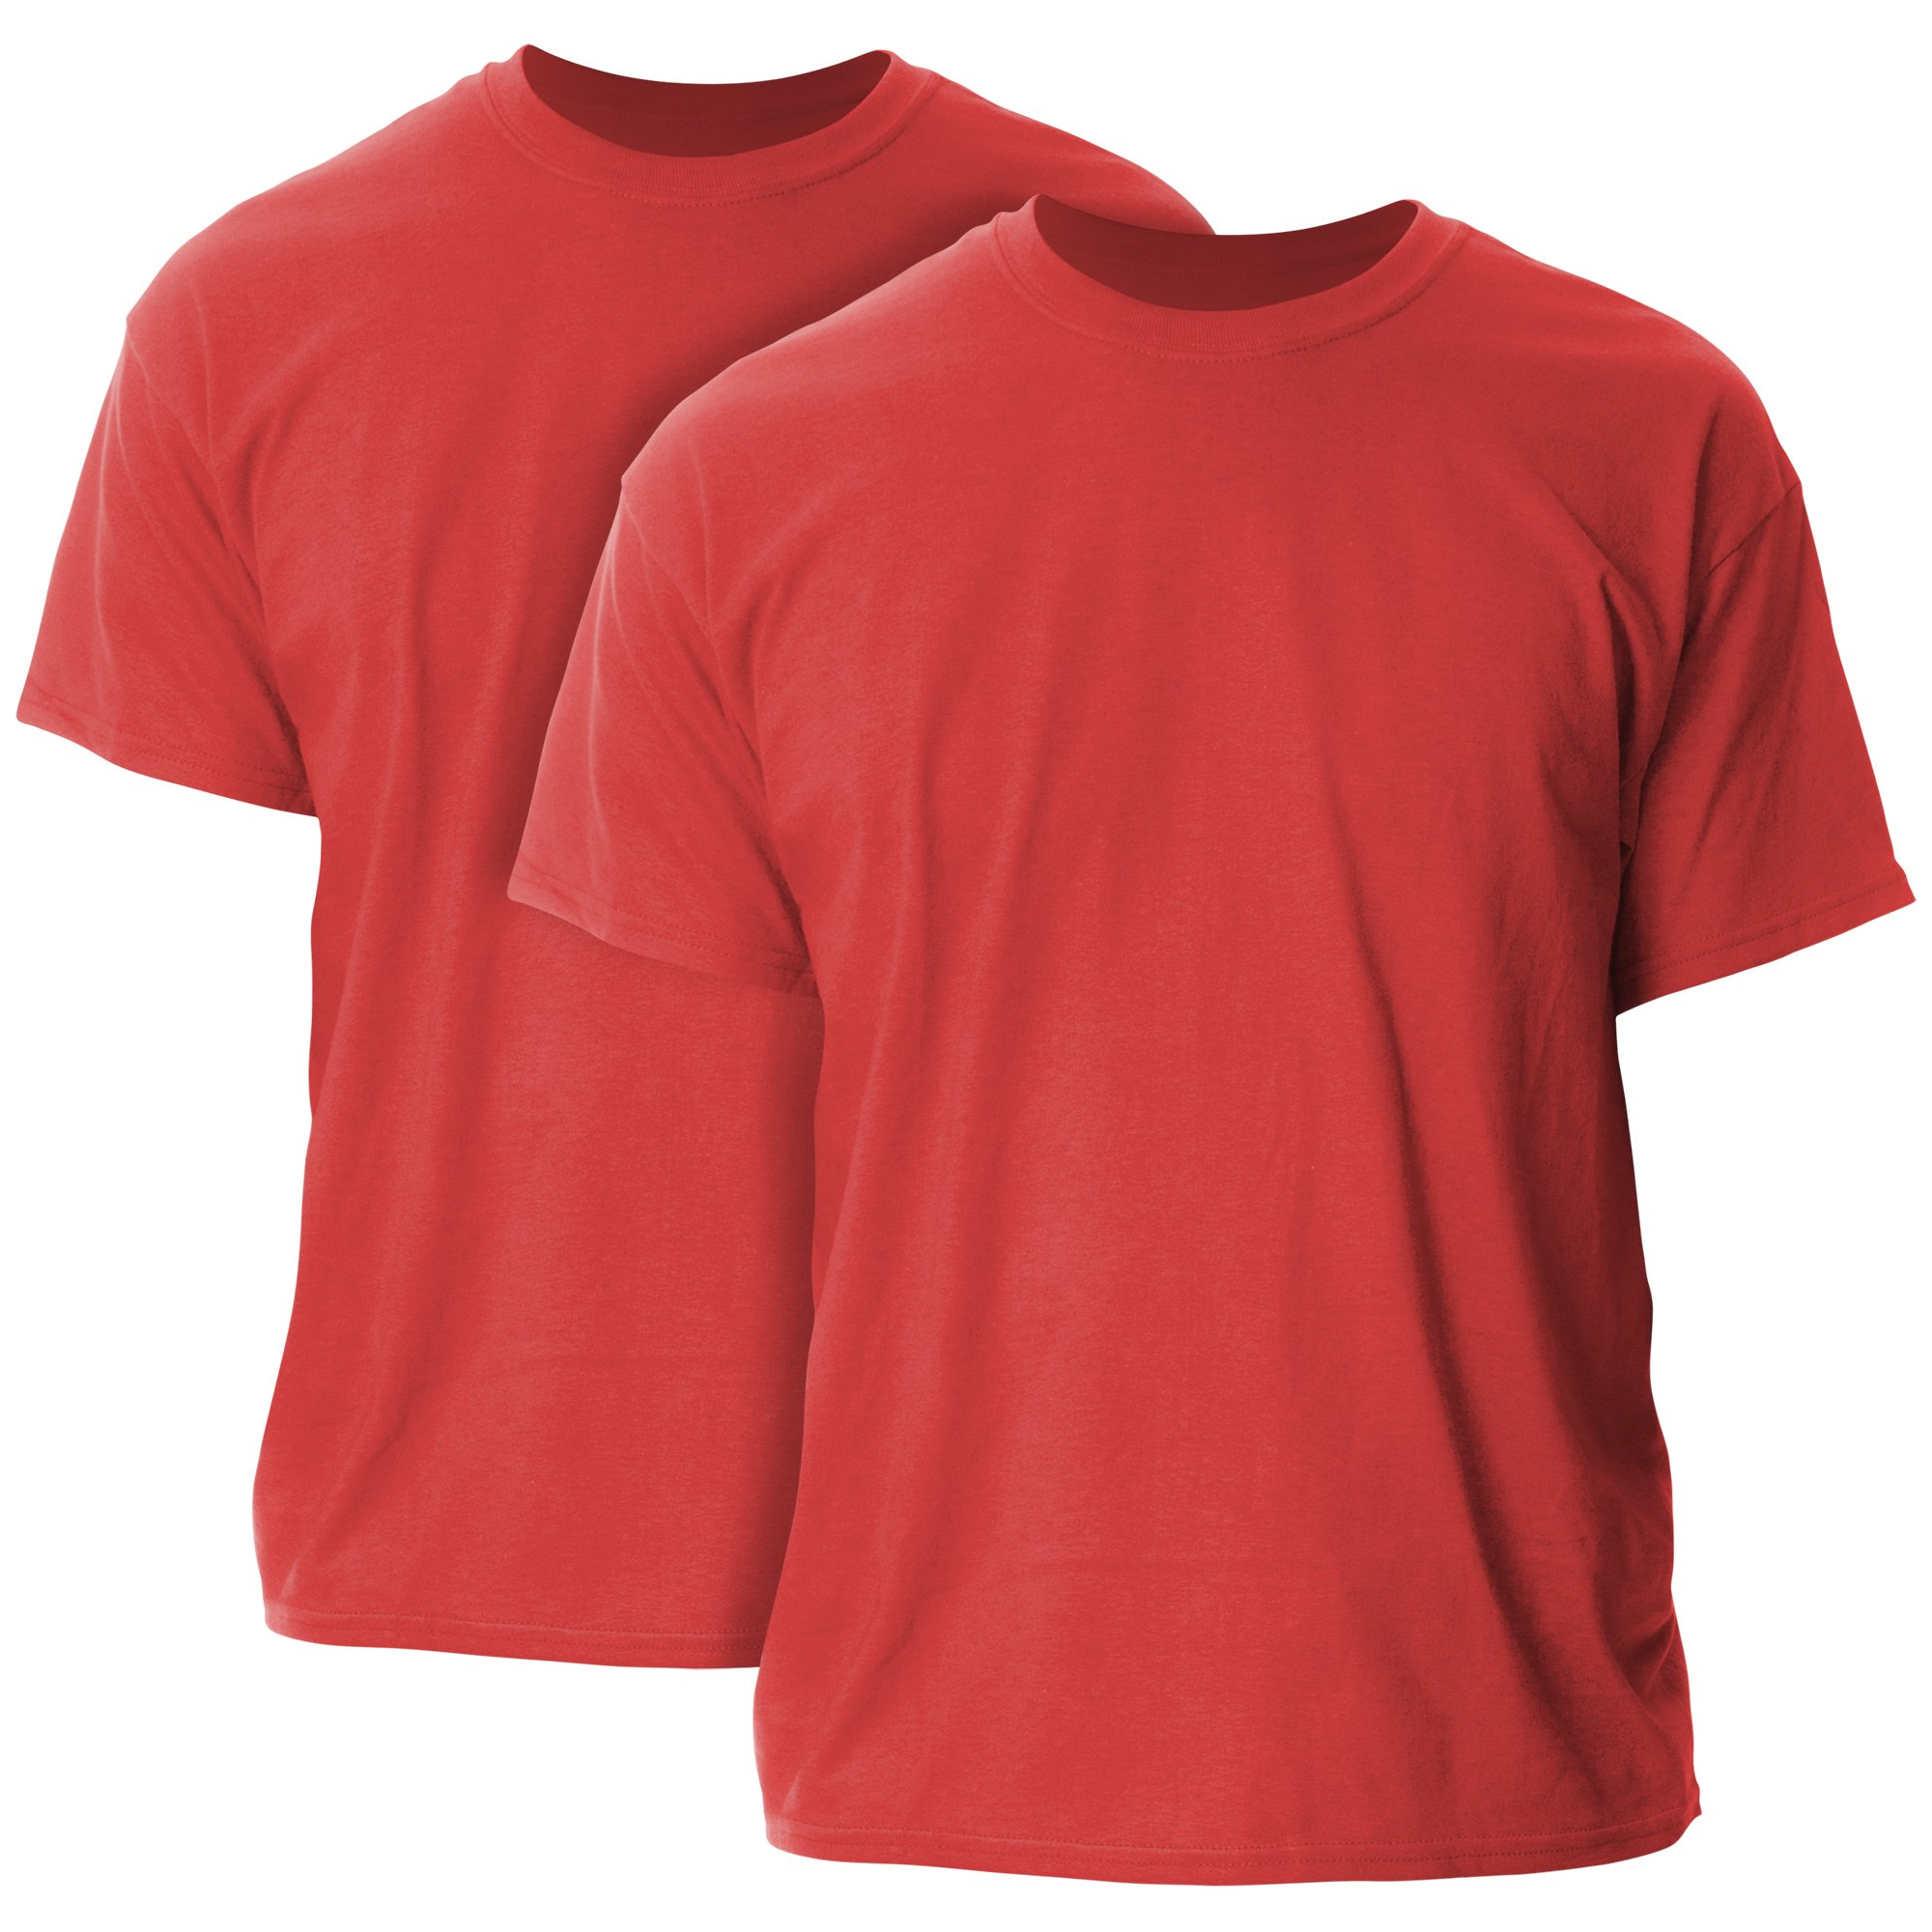 Gildan Men's Ultra Cotton Adult T-Shirt, 2-Pack, Red, Large